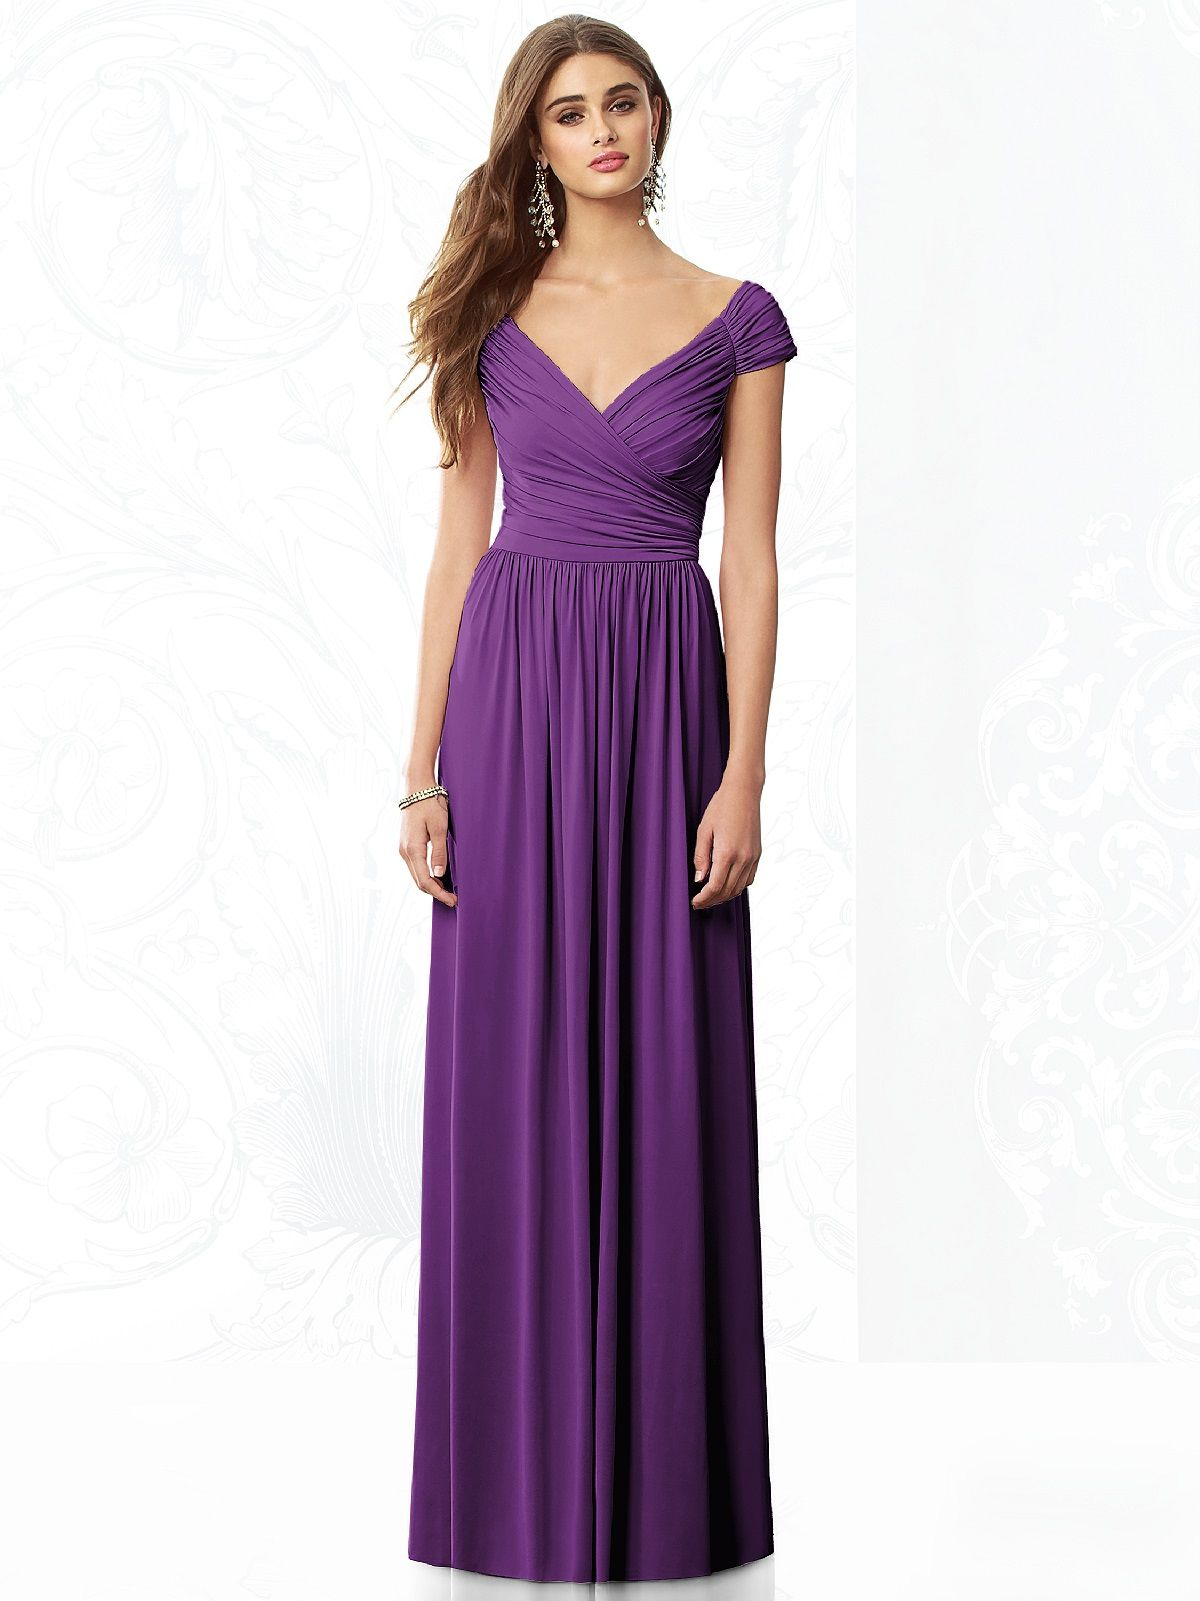 After Six 6697 Bridesmaid Dress in Plum   I DO!   Pinterest   Flacos ...